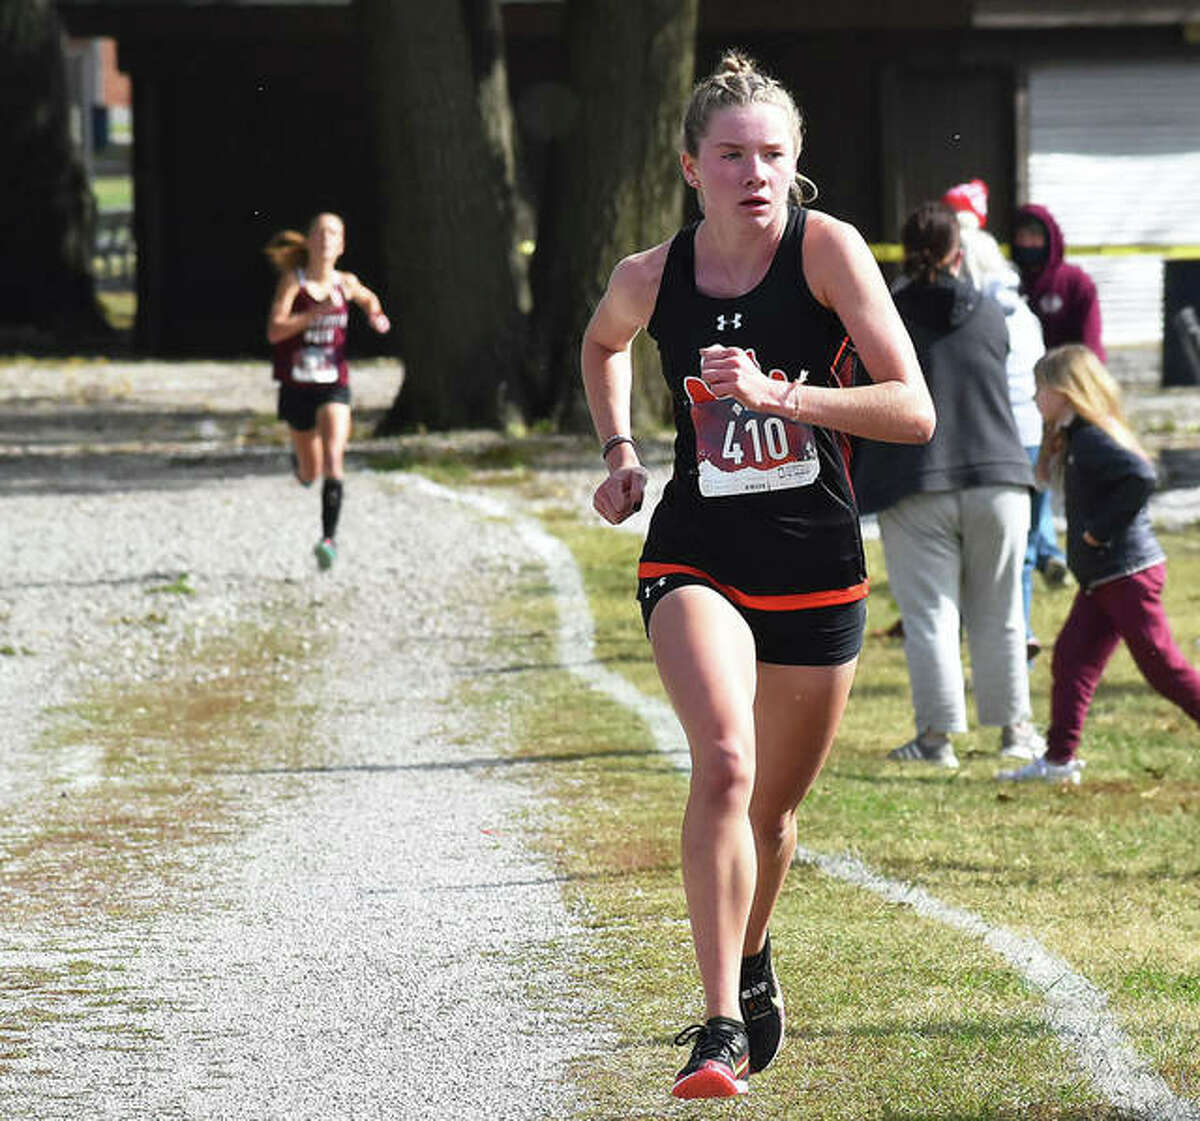 Edwardsville sophomore Riley Knoyle (front) runs alone in third place at the Granite City Class 3A Regional at Wilson Park. Knoyle is the 2020 Telegraph Large-Schools Girls Cross Country Runner of the Year, repeating the honor she was as a freshman.